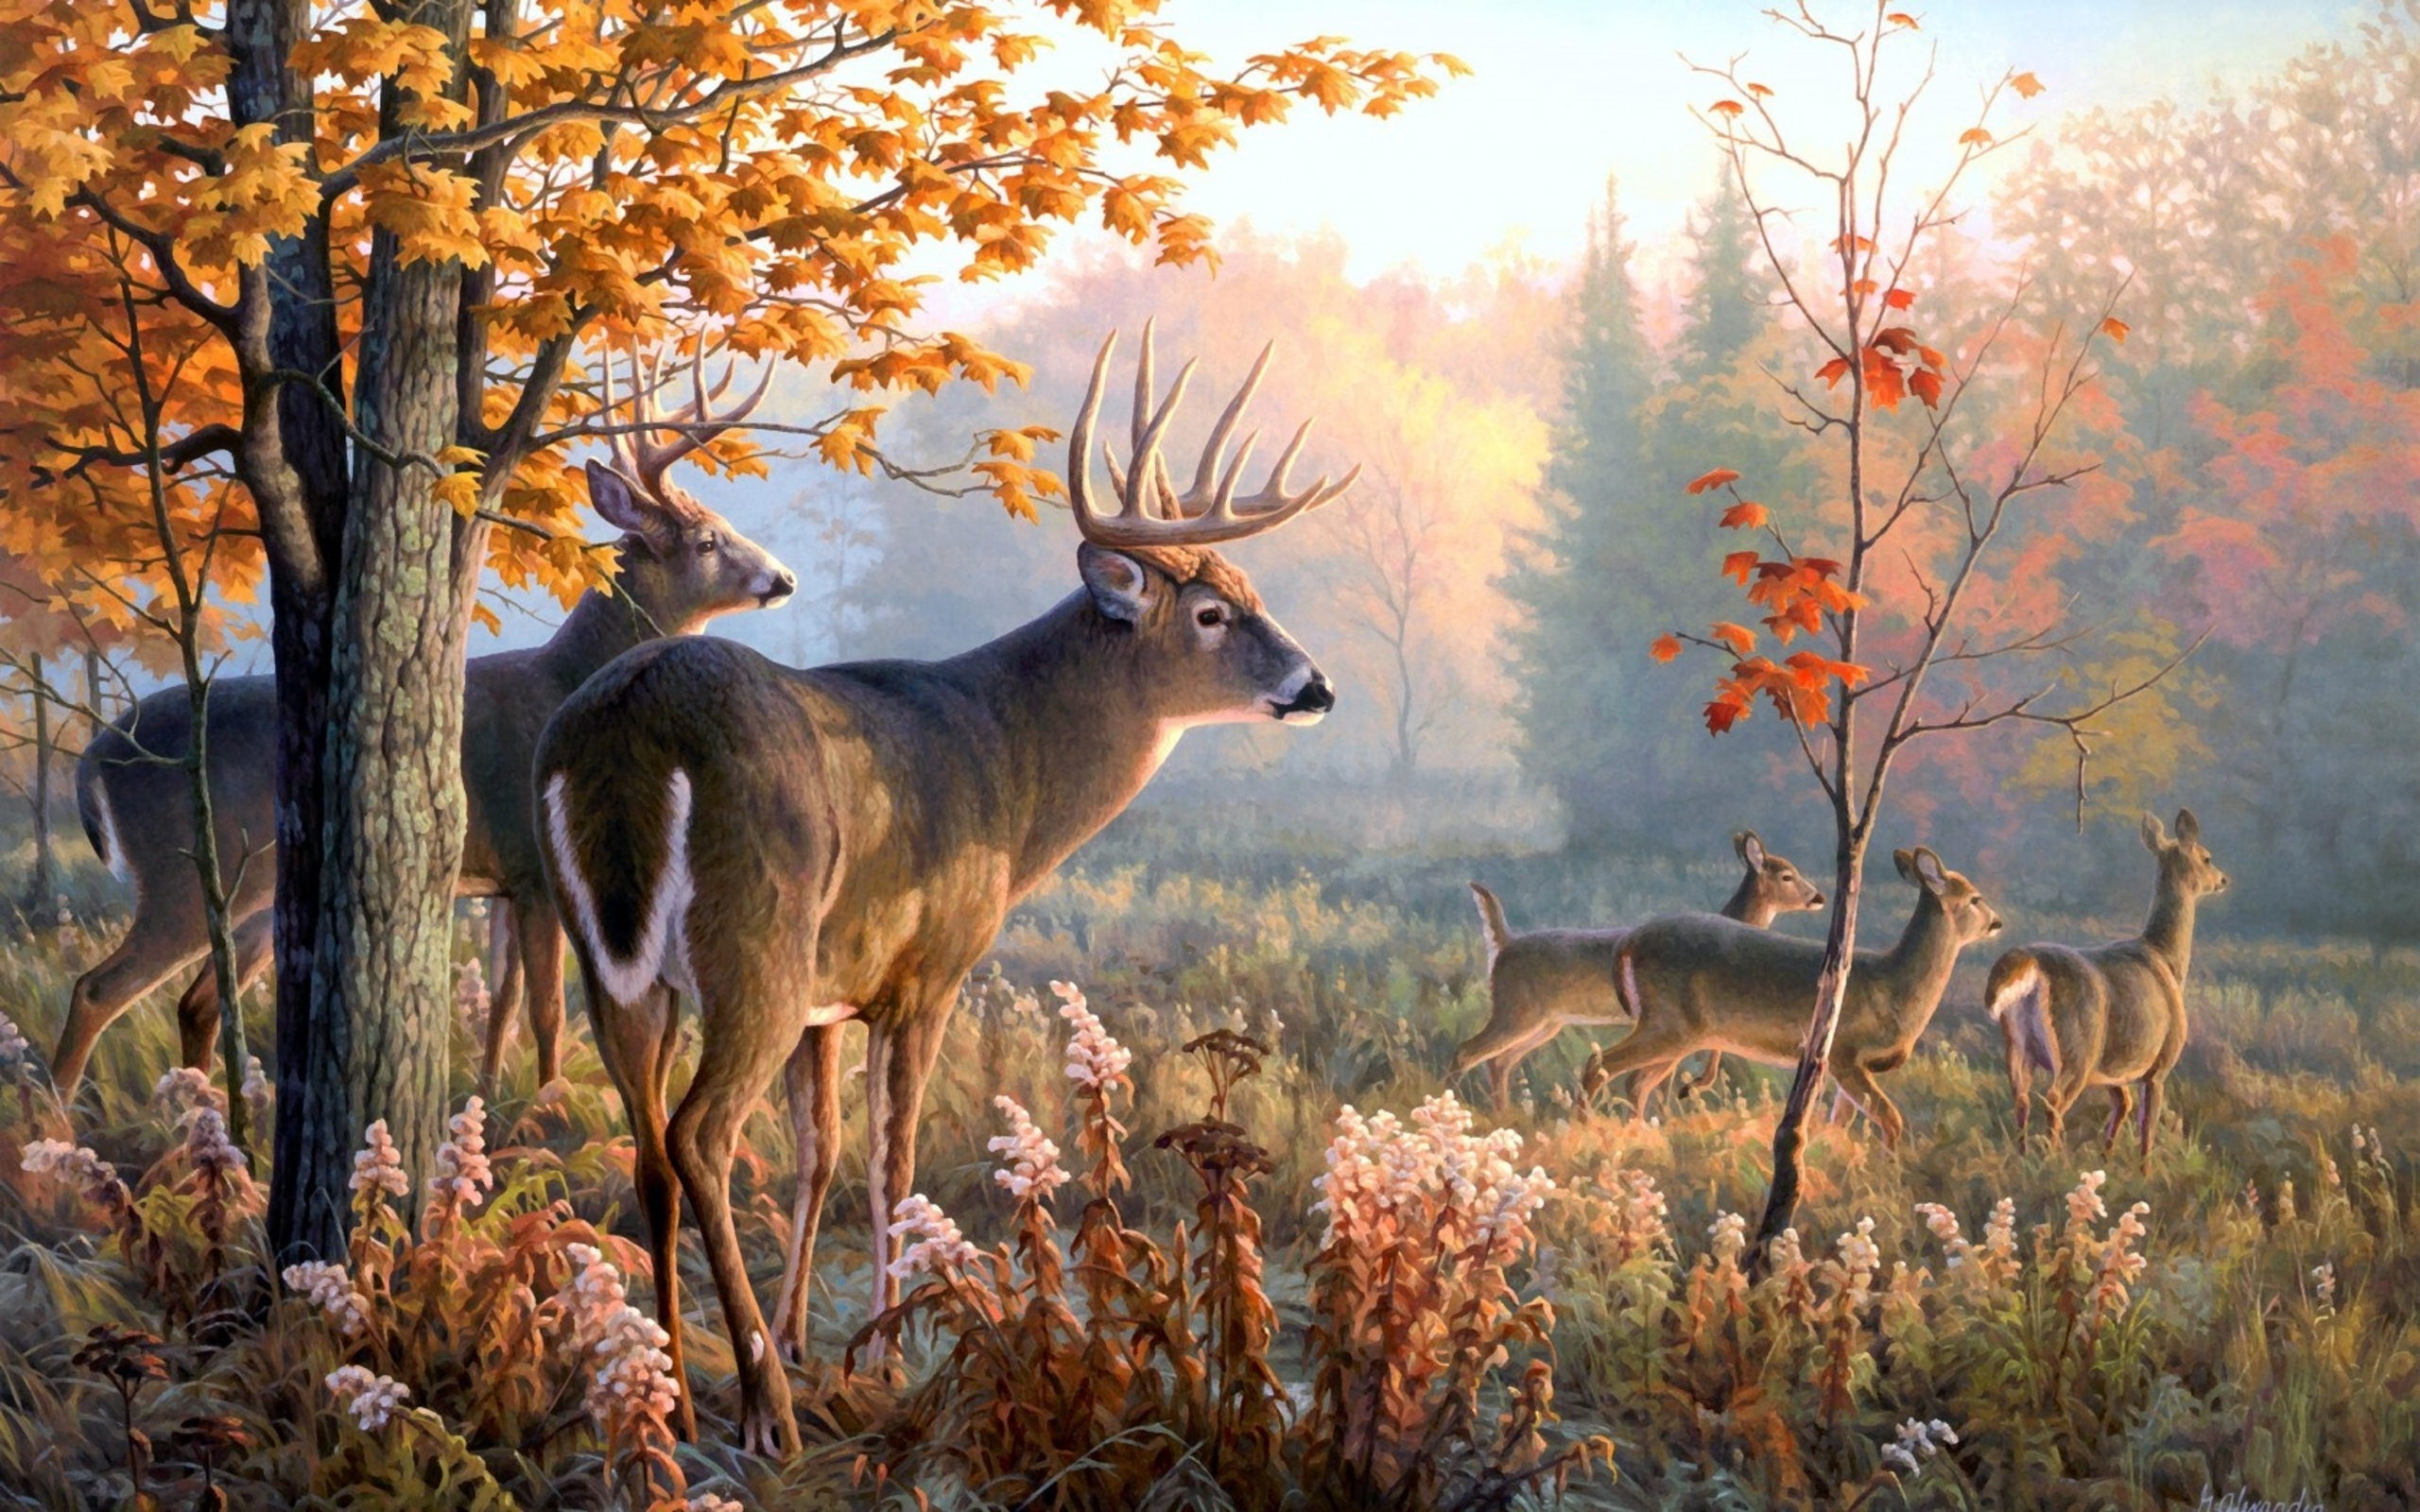 wallpaper Deer Art Wallpaper hd wallpaper background desktop 2560x1600